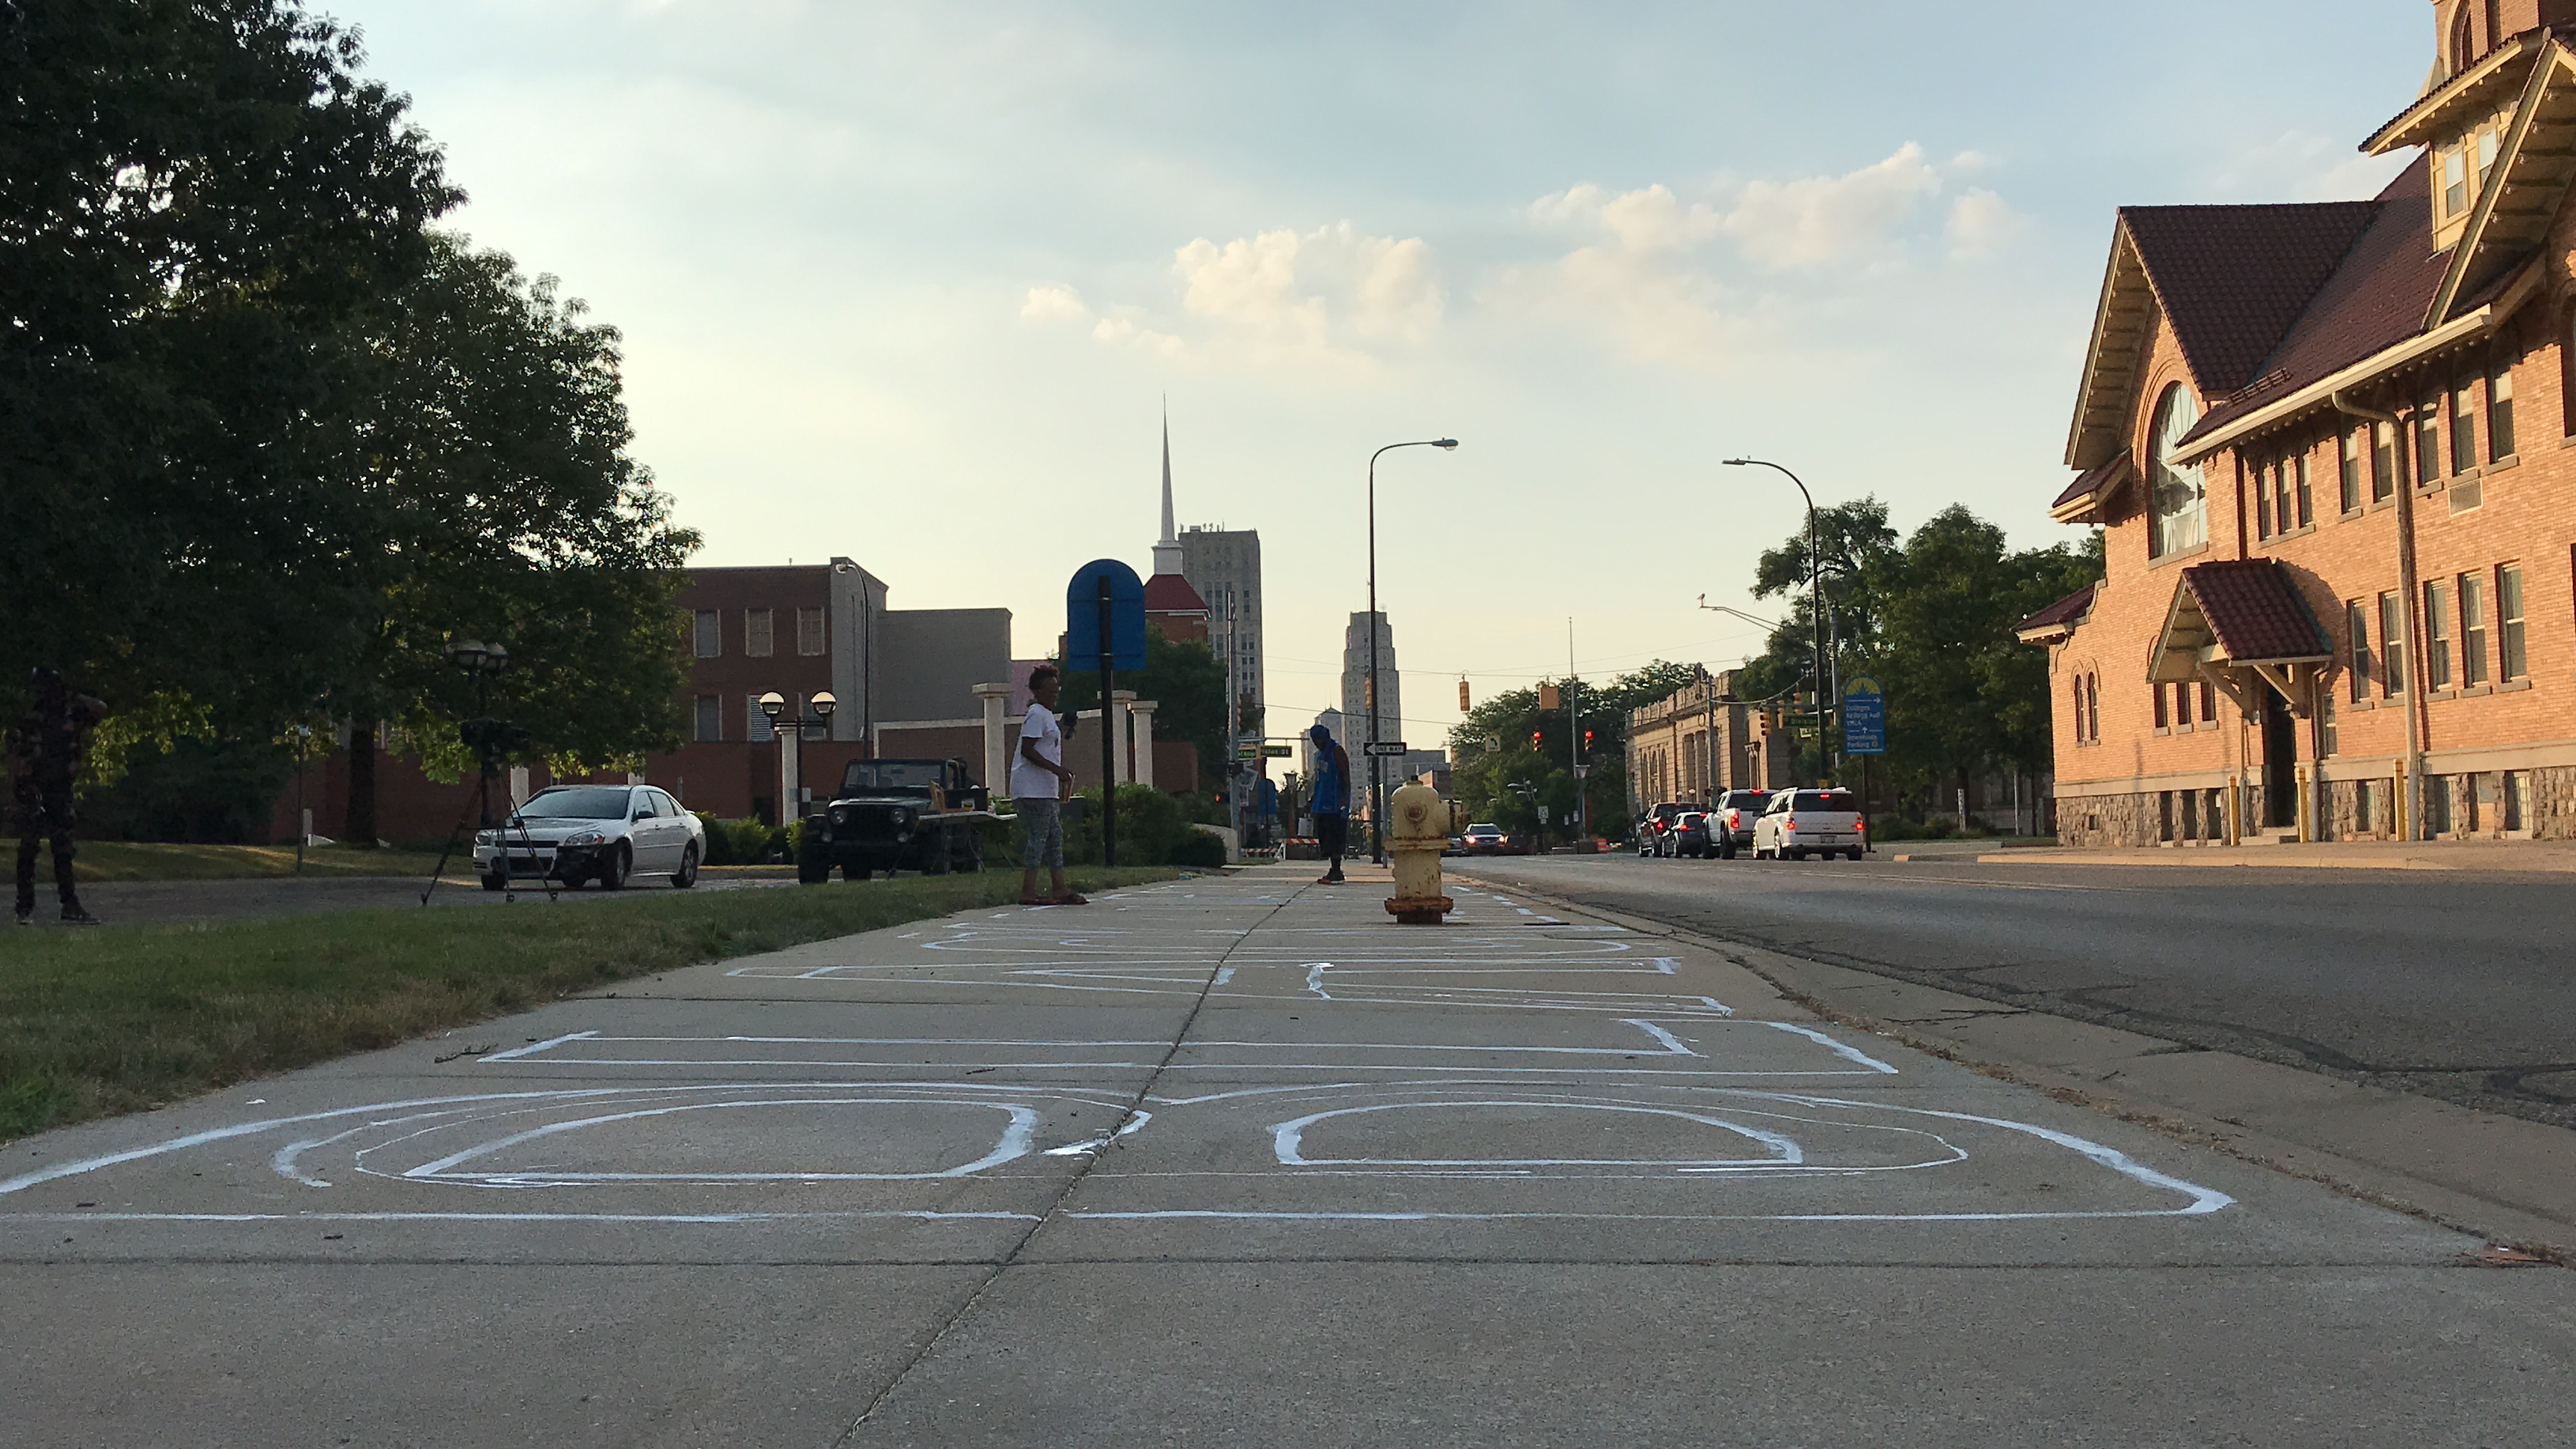 The sun sets on the city, as the Black Lives Matter version of the mural nears completion in Battle Creek, Michigan, on Tuesday, July 7, 2020. Just the outline will be in white. Artists will later fill the letters with color. (WWMT/Jason Heeres)